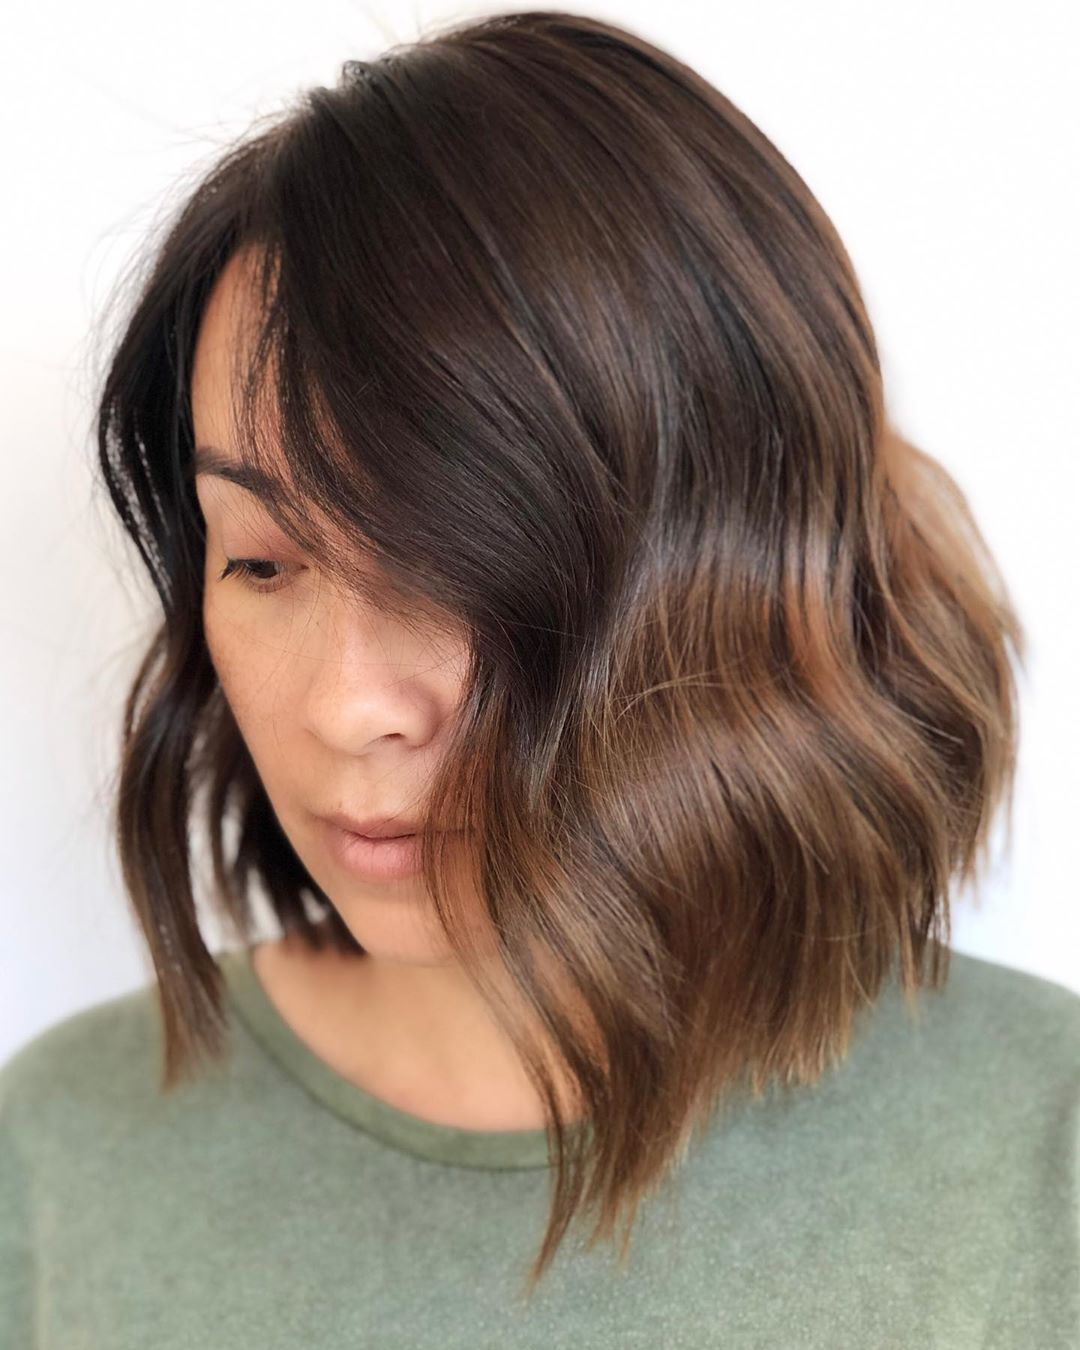 Romantic Shoulder-Length Hairstyle with Waves